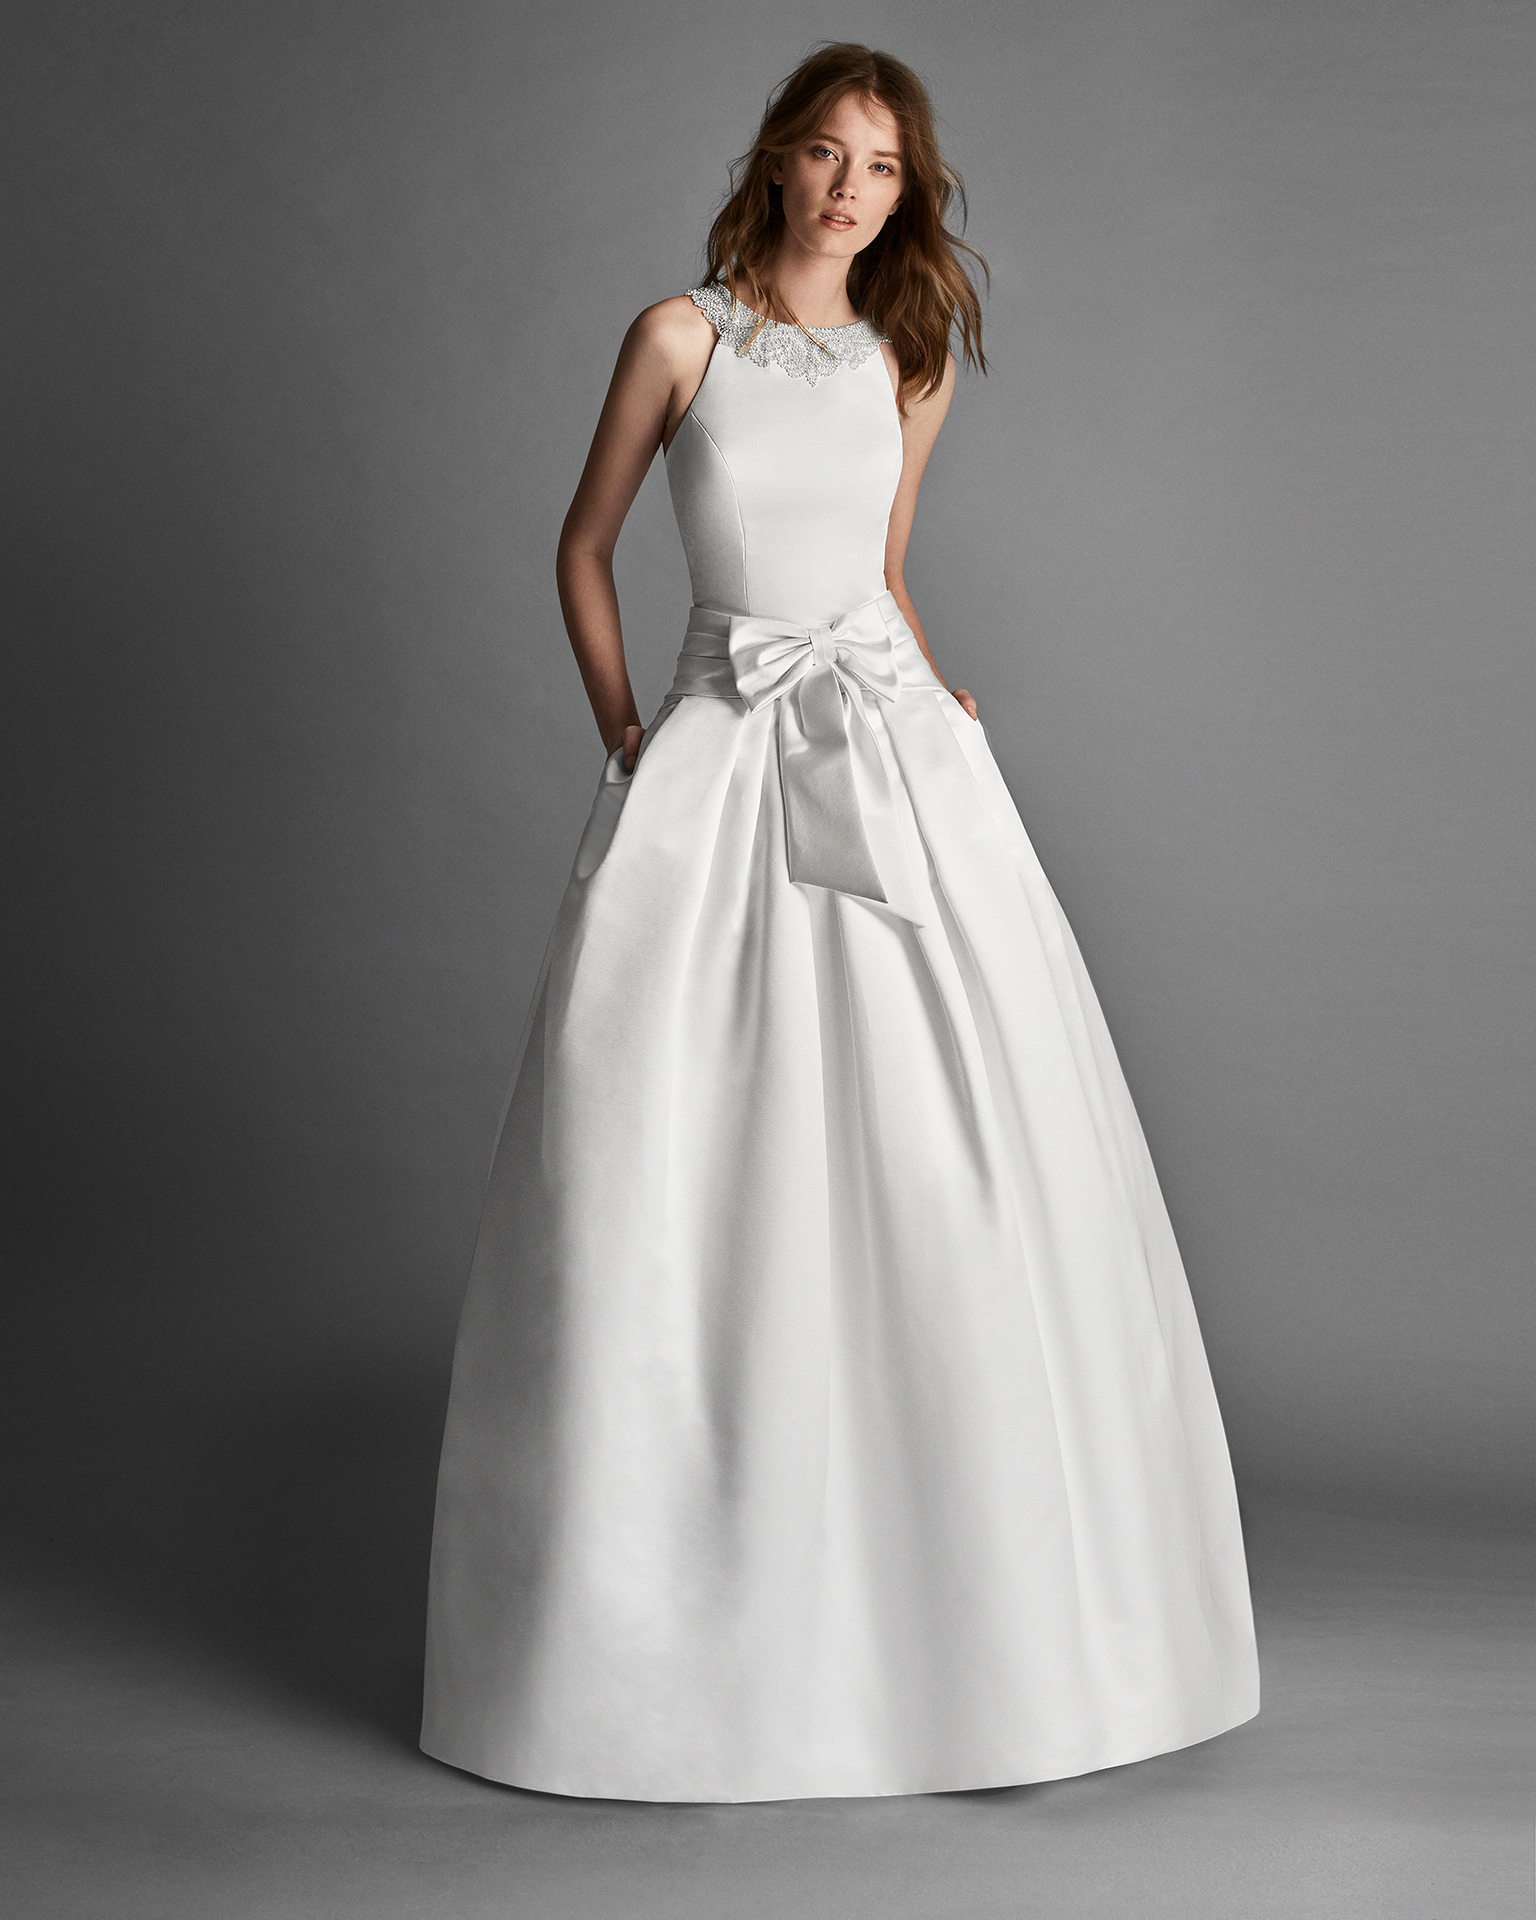 Classic-style beaded duchess satin wedding dress with low back and pockets, in ivory.